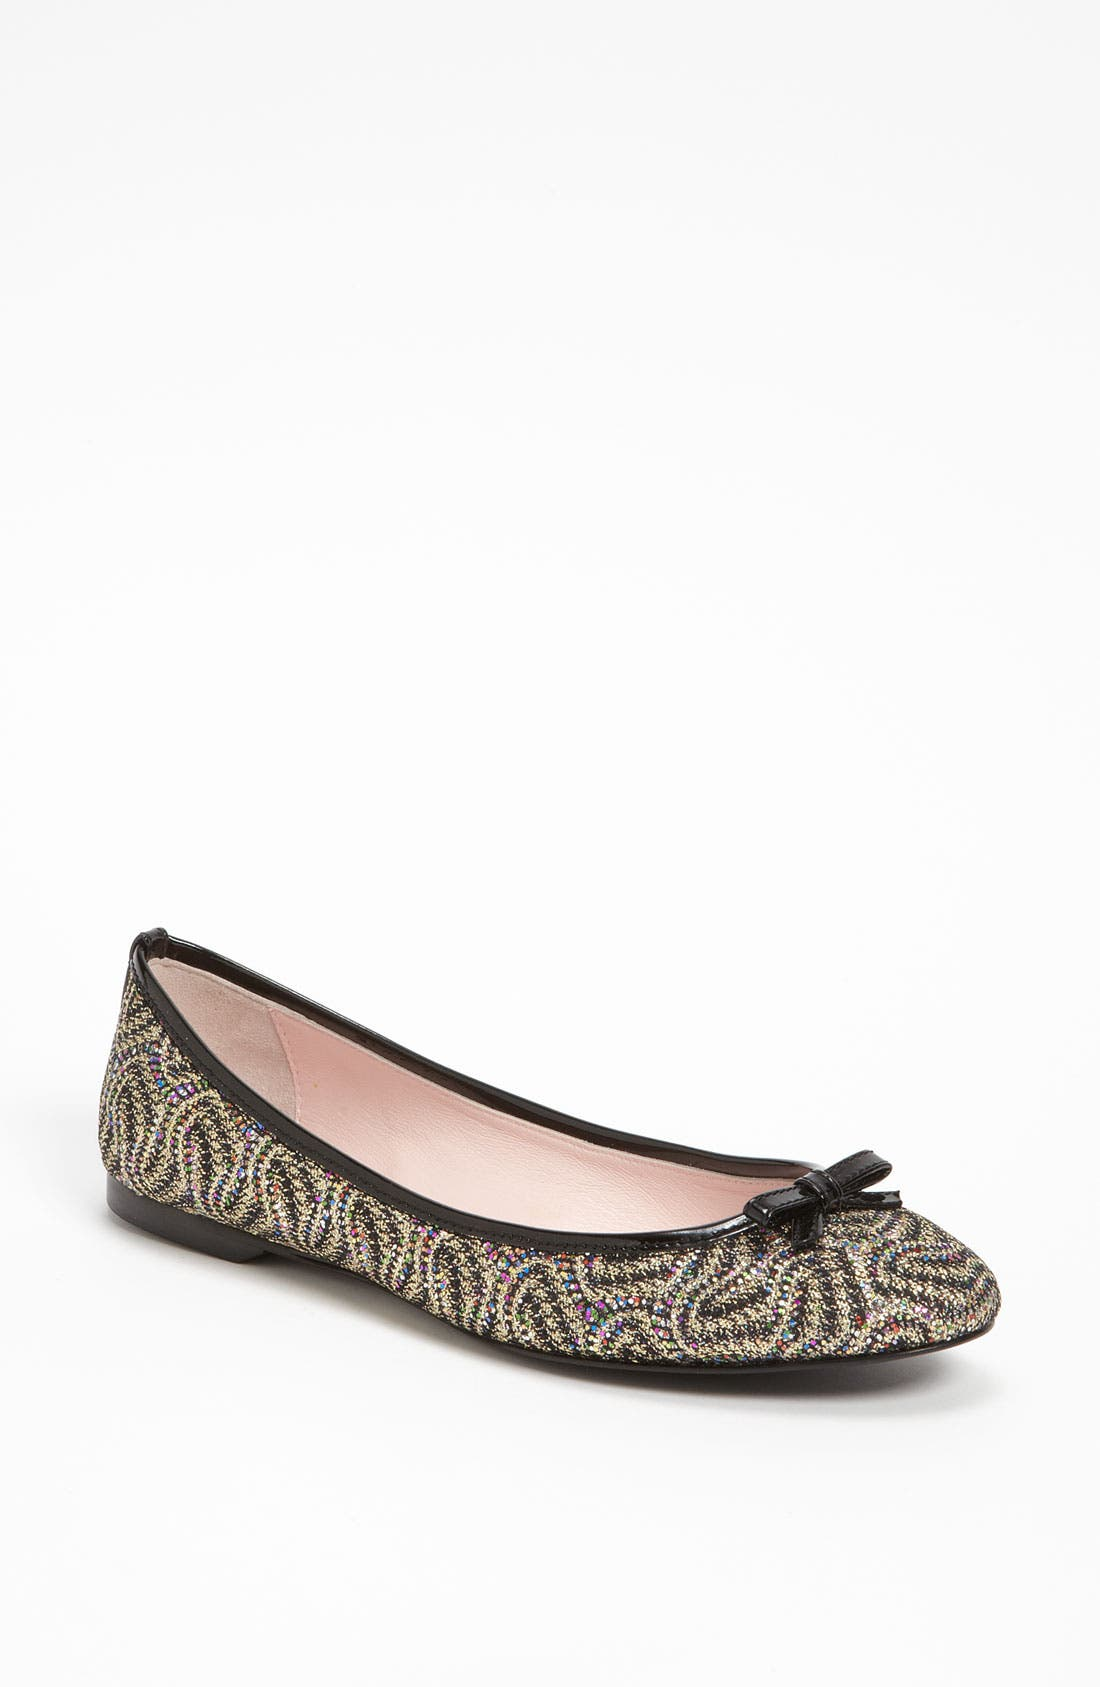 Alternate Image 1 Selected - RED Valentino Ballet Flat